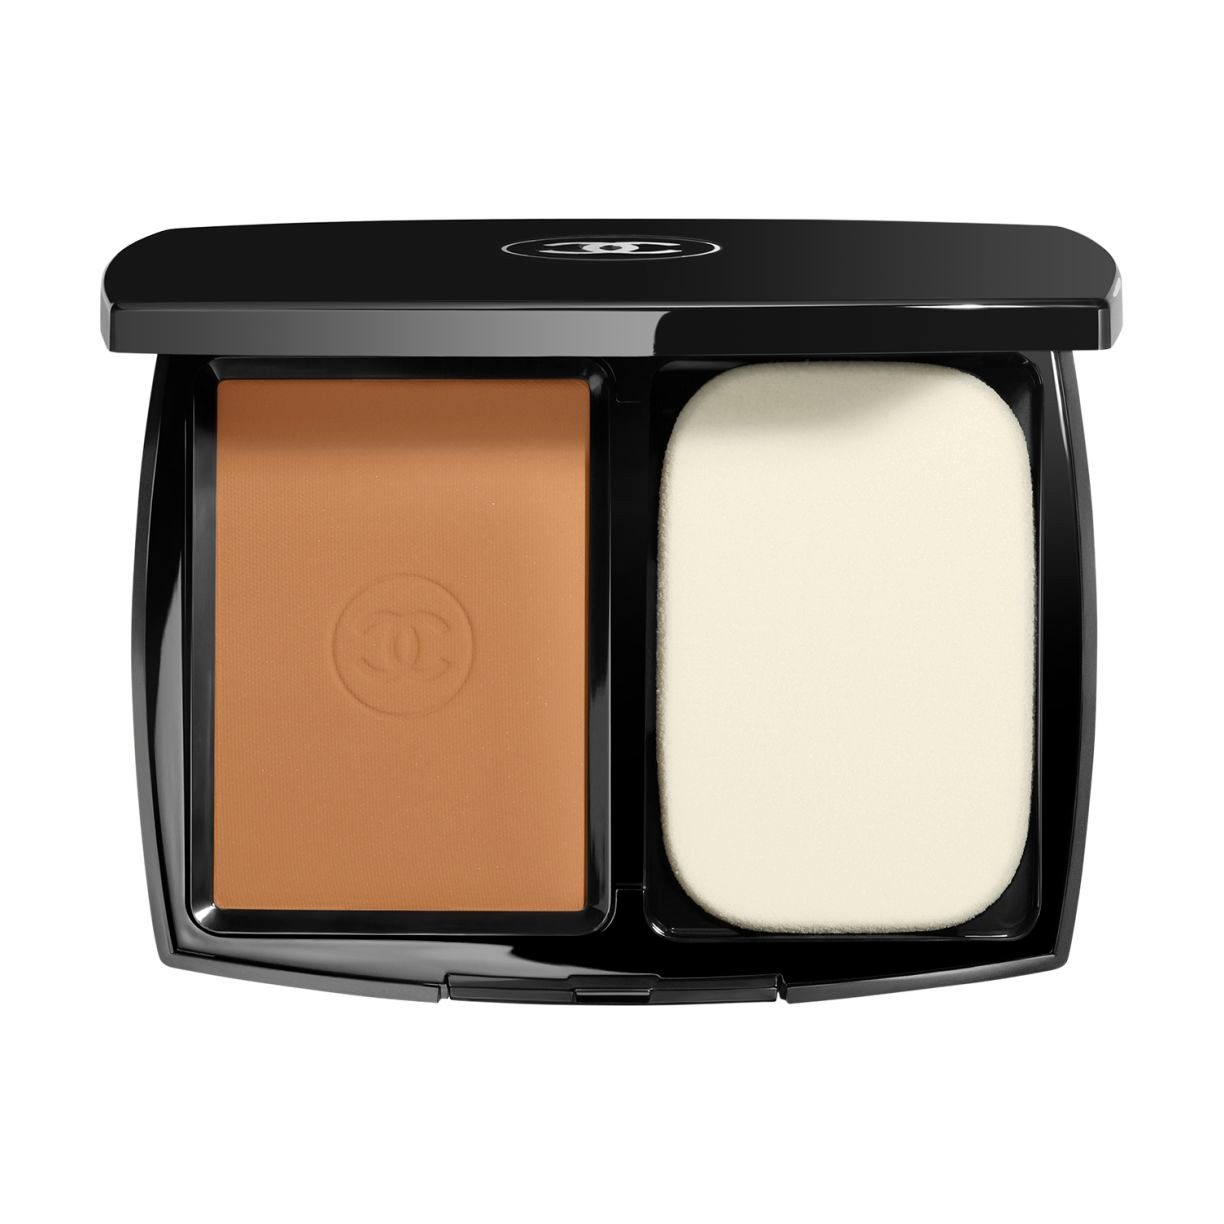 LE TEINT ULTRA TENUE TEINT COMPACT HAUTE PERFECTION 121 - CARAMEL